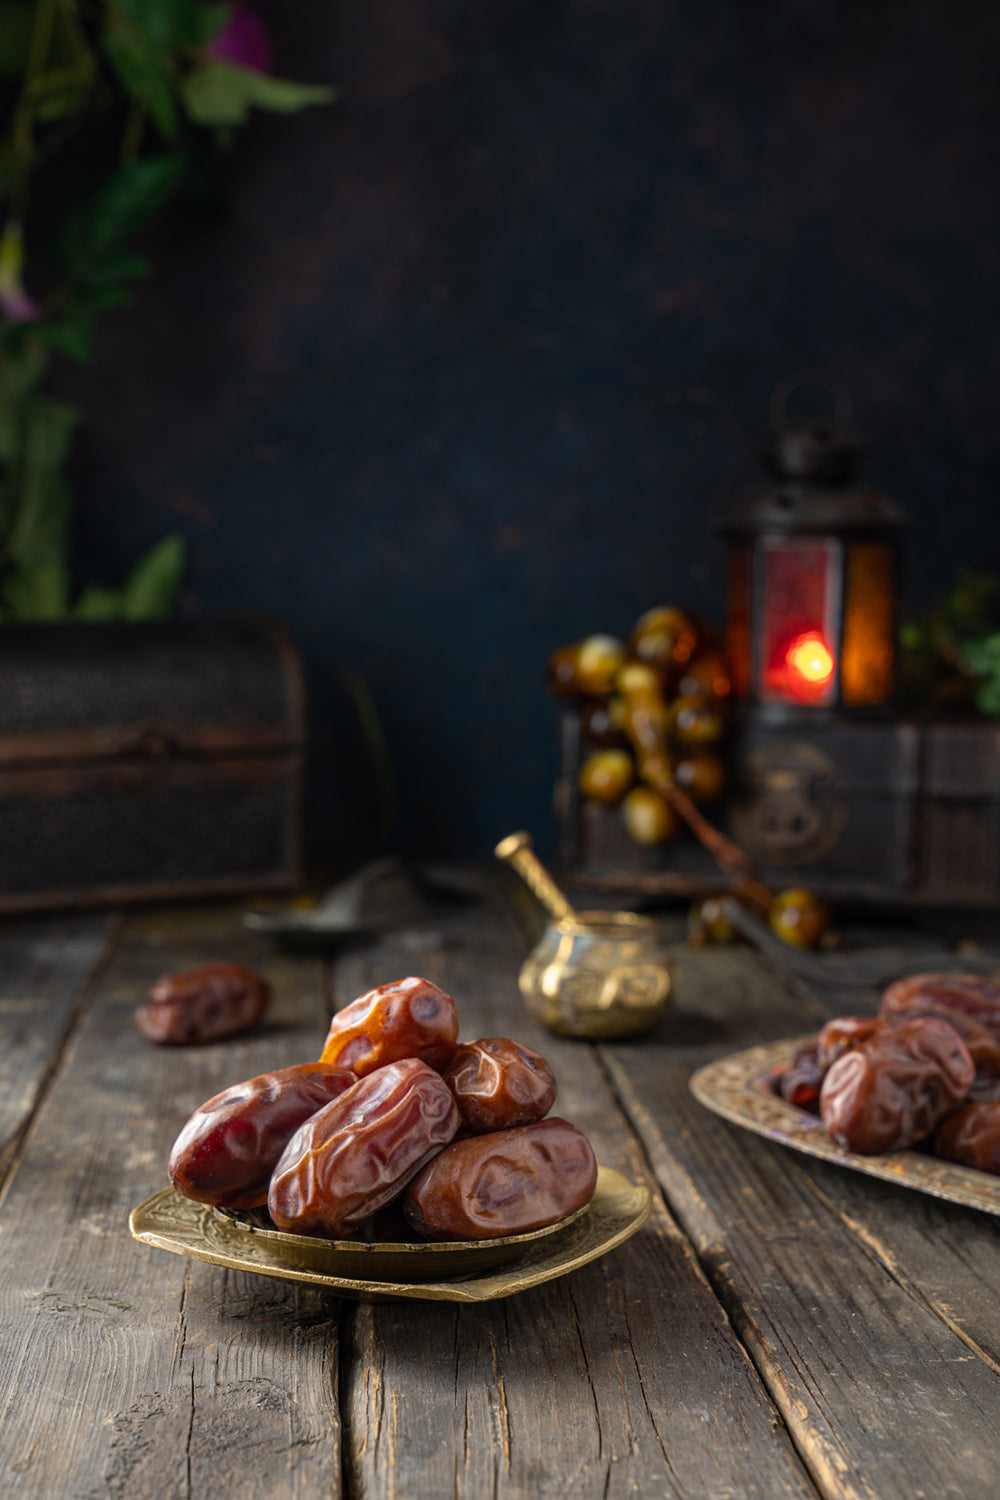 Khodari Dates Large 1.25 KG (2 Boxes)